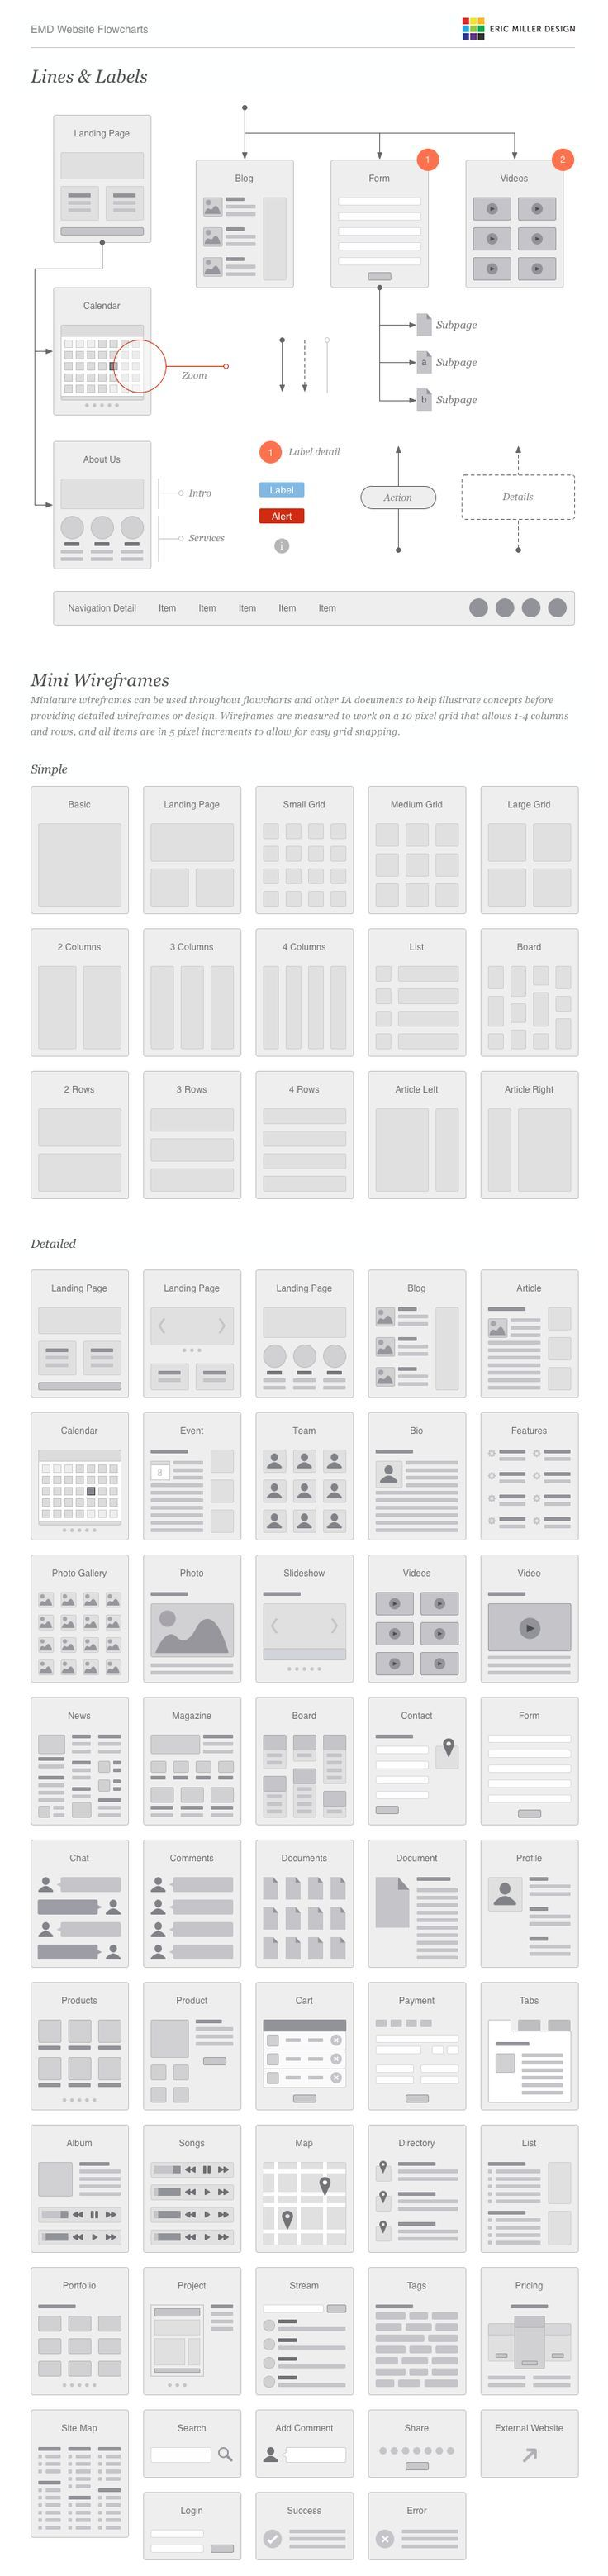 Flowcharts and Wireframes for designing Websites and Web Applications: